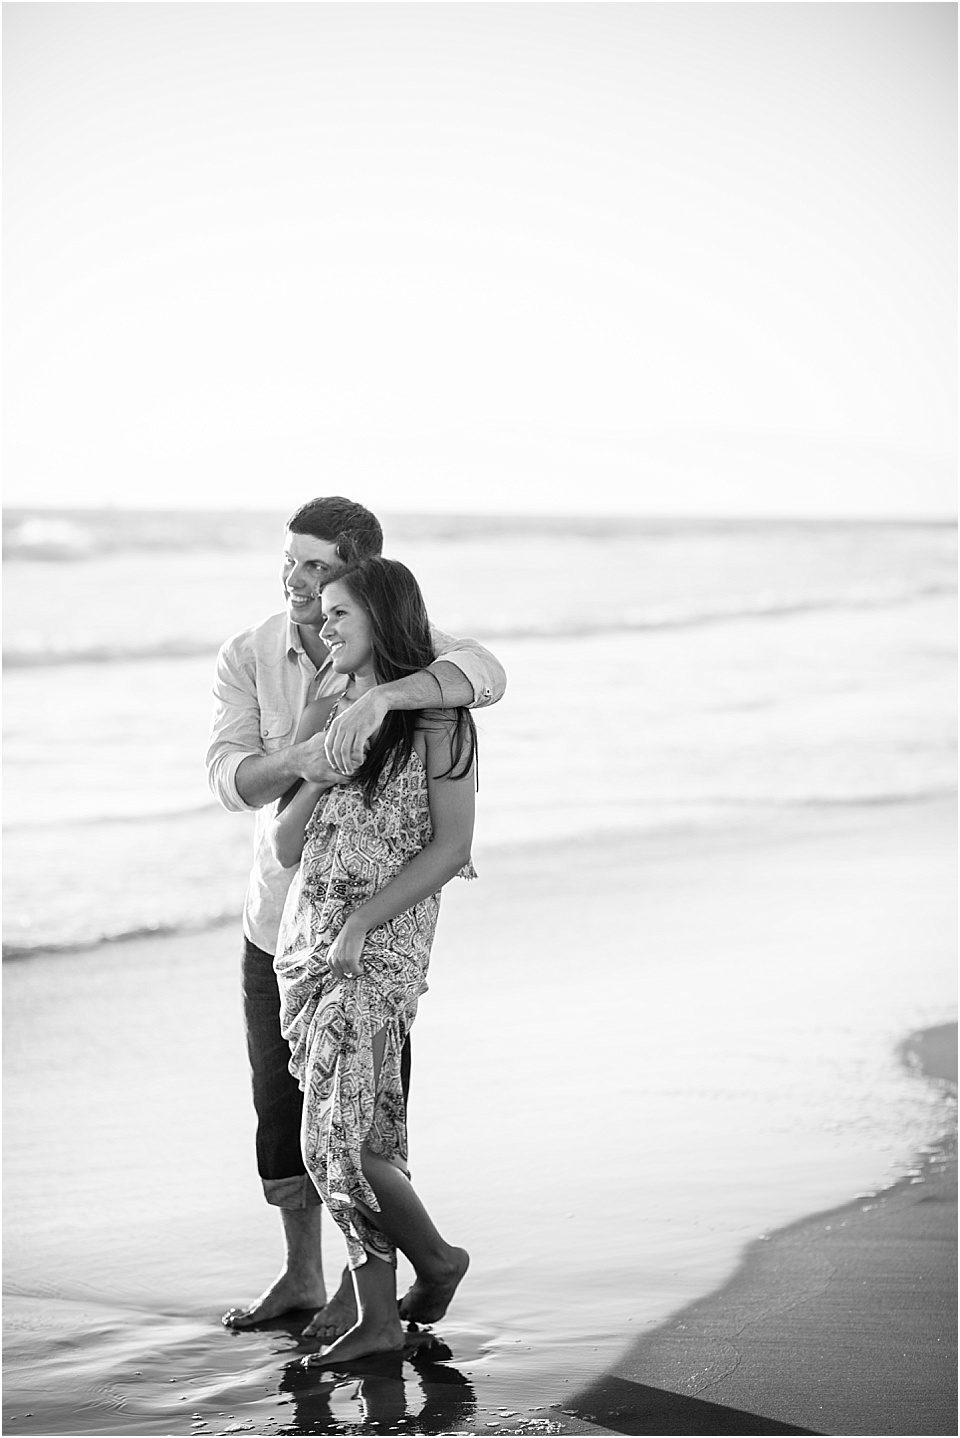 Manhattan Beach - Long boarding - Engagement Photos {Valorie Darling Photography} - 10508.jpg